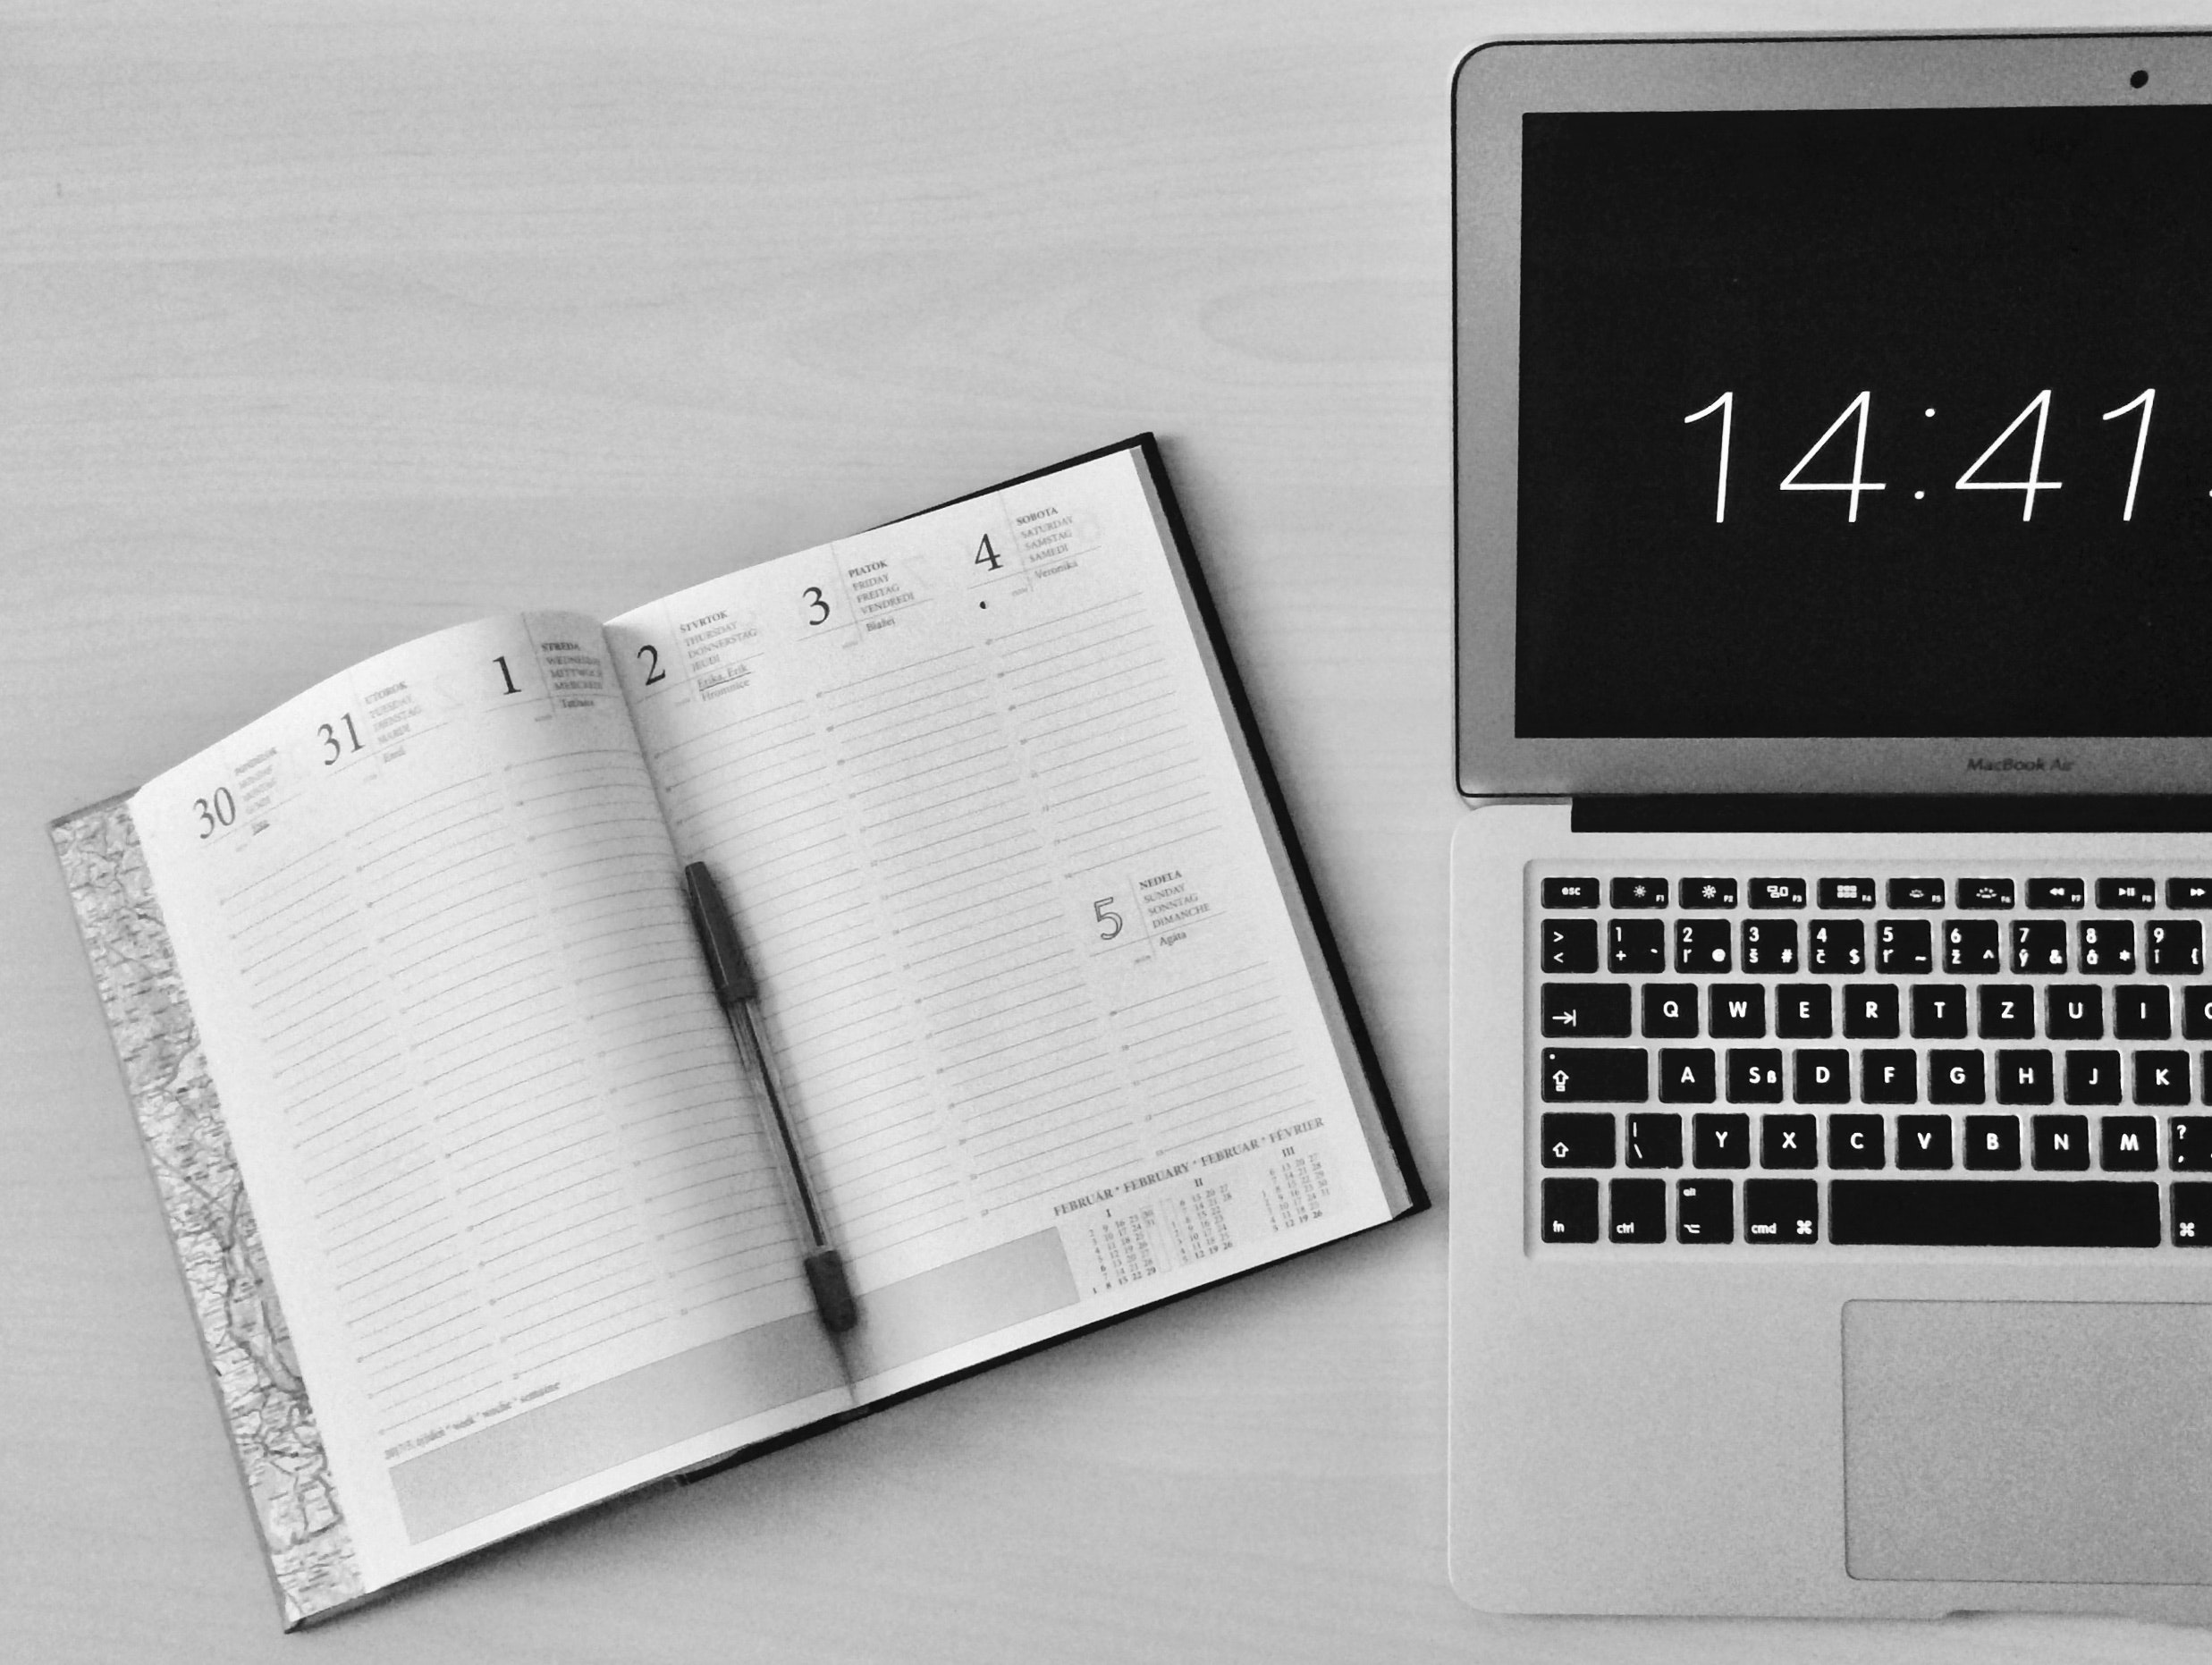 5 Best Time Tracking Apps on the Market